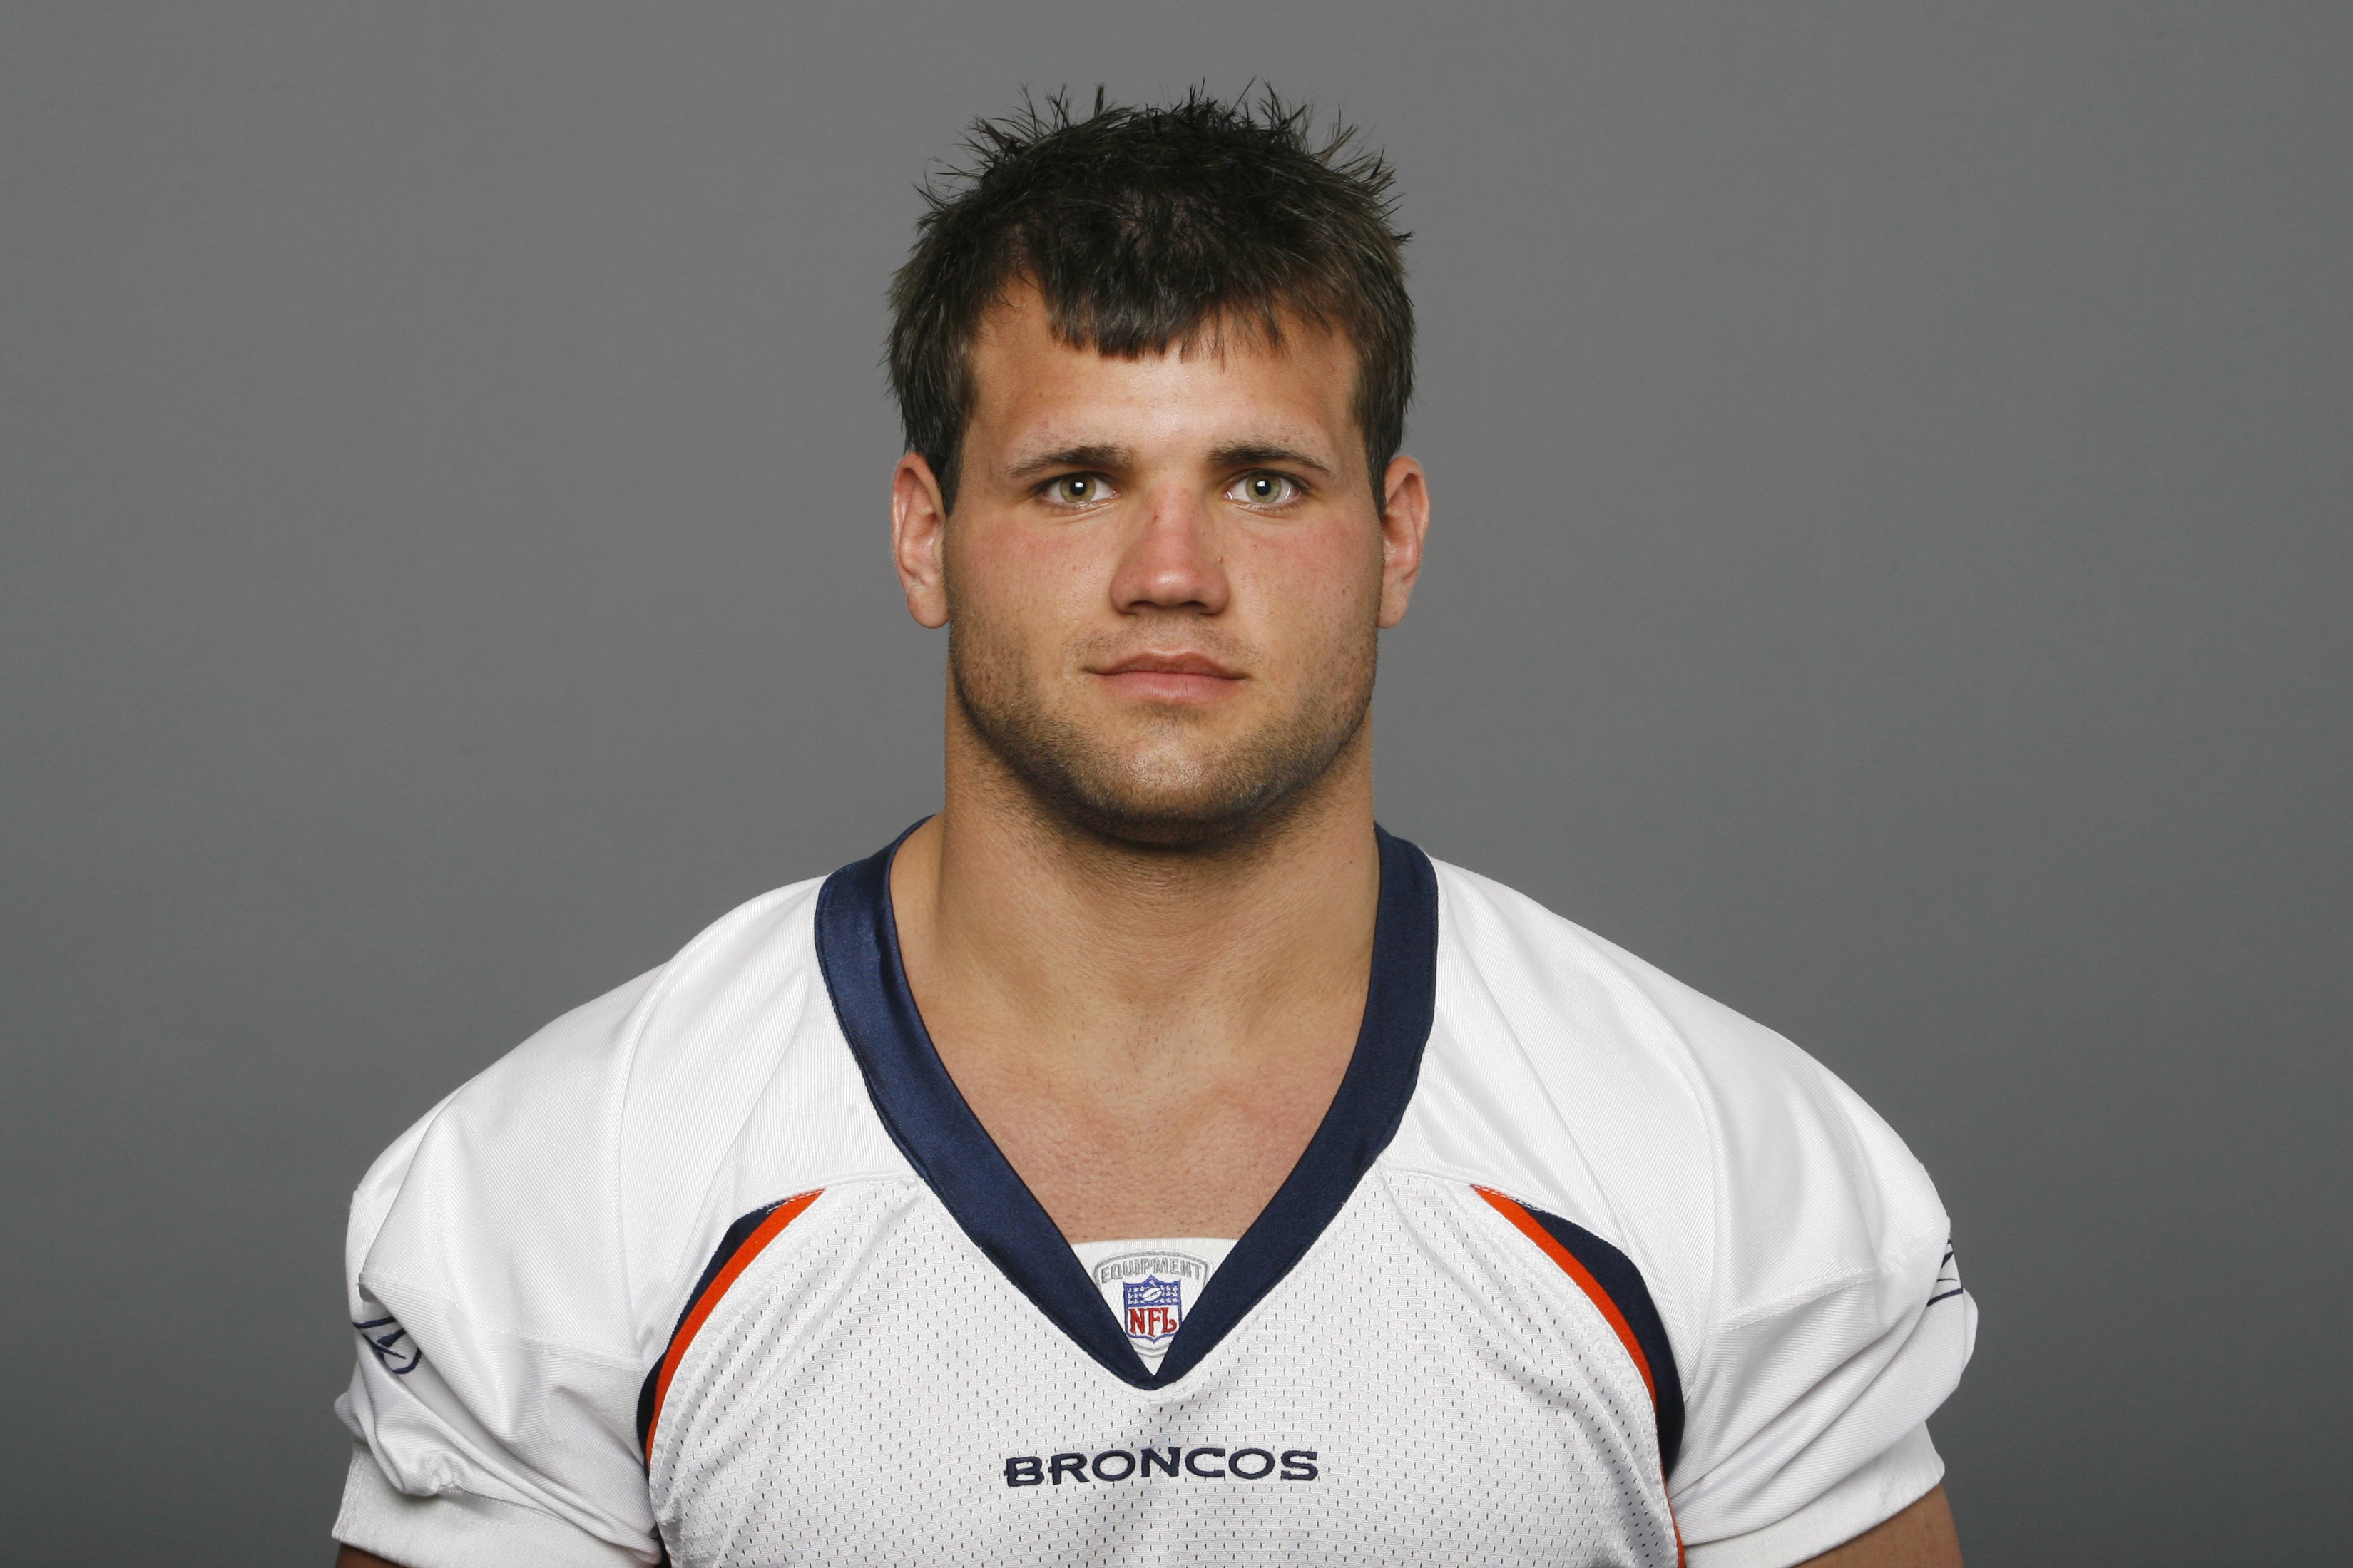 DENVER - 2009:  Peyton Hillis of the Denver Broncos poses for his 2009 NFL headshot at photo day in Denver, Colorado. (Photo by NFL Photos)